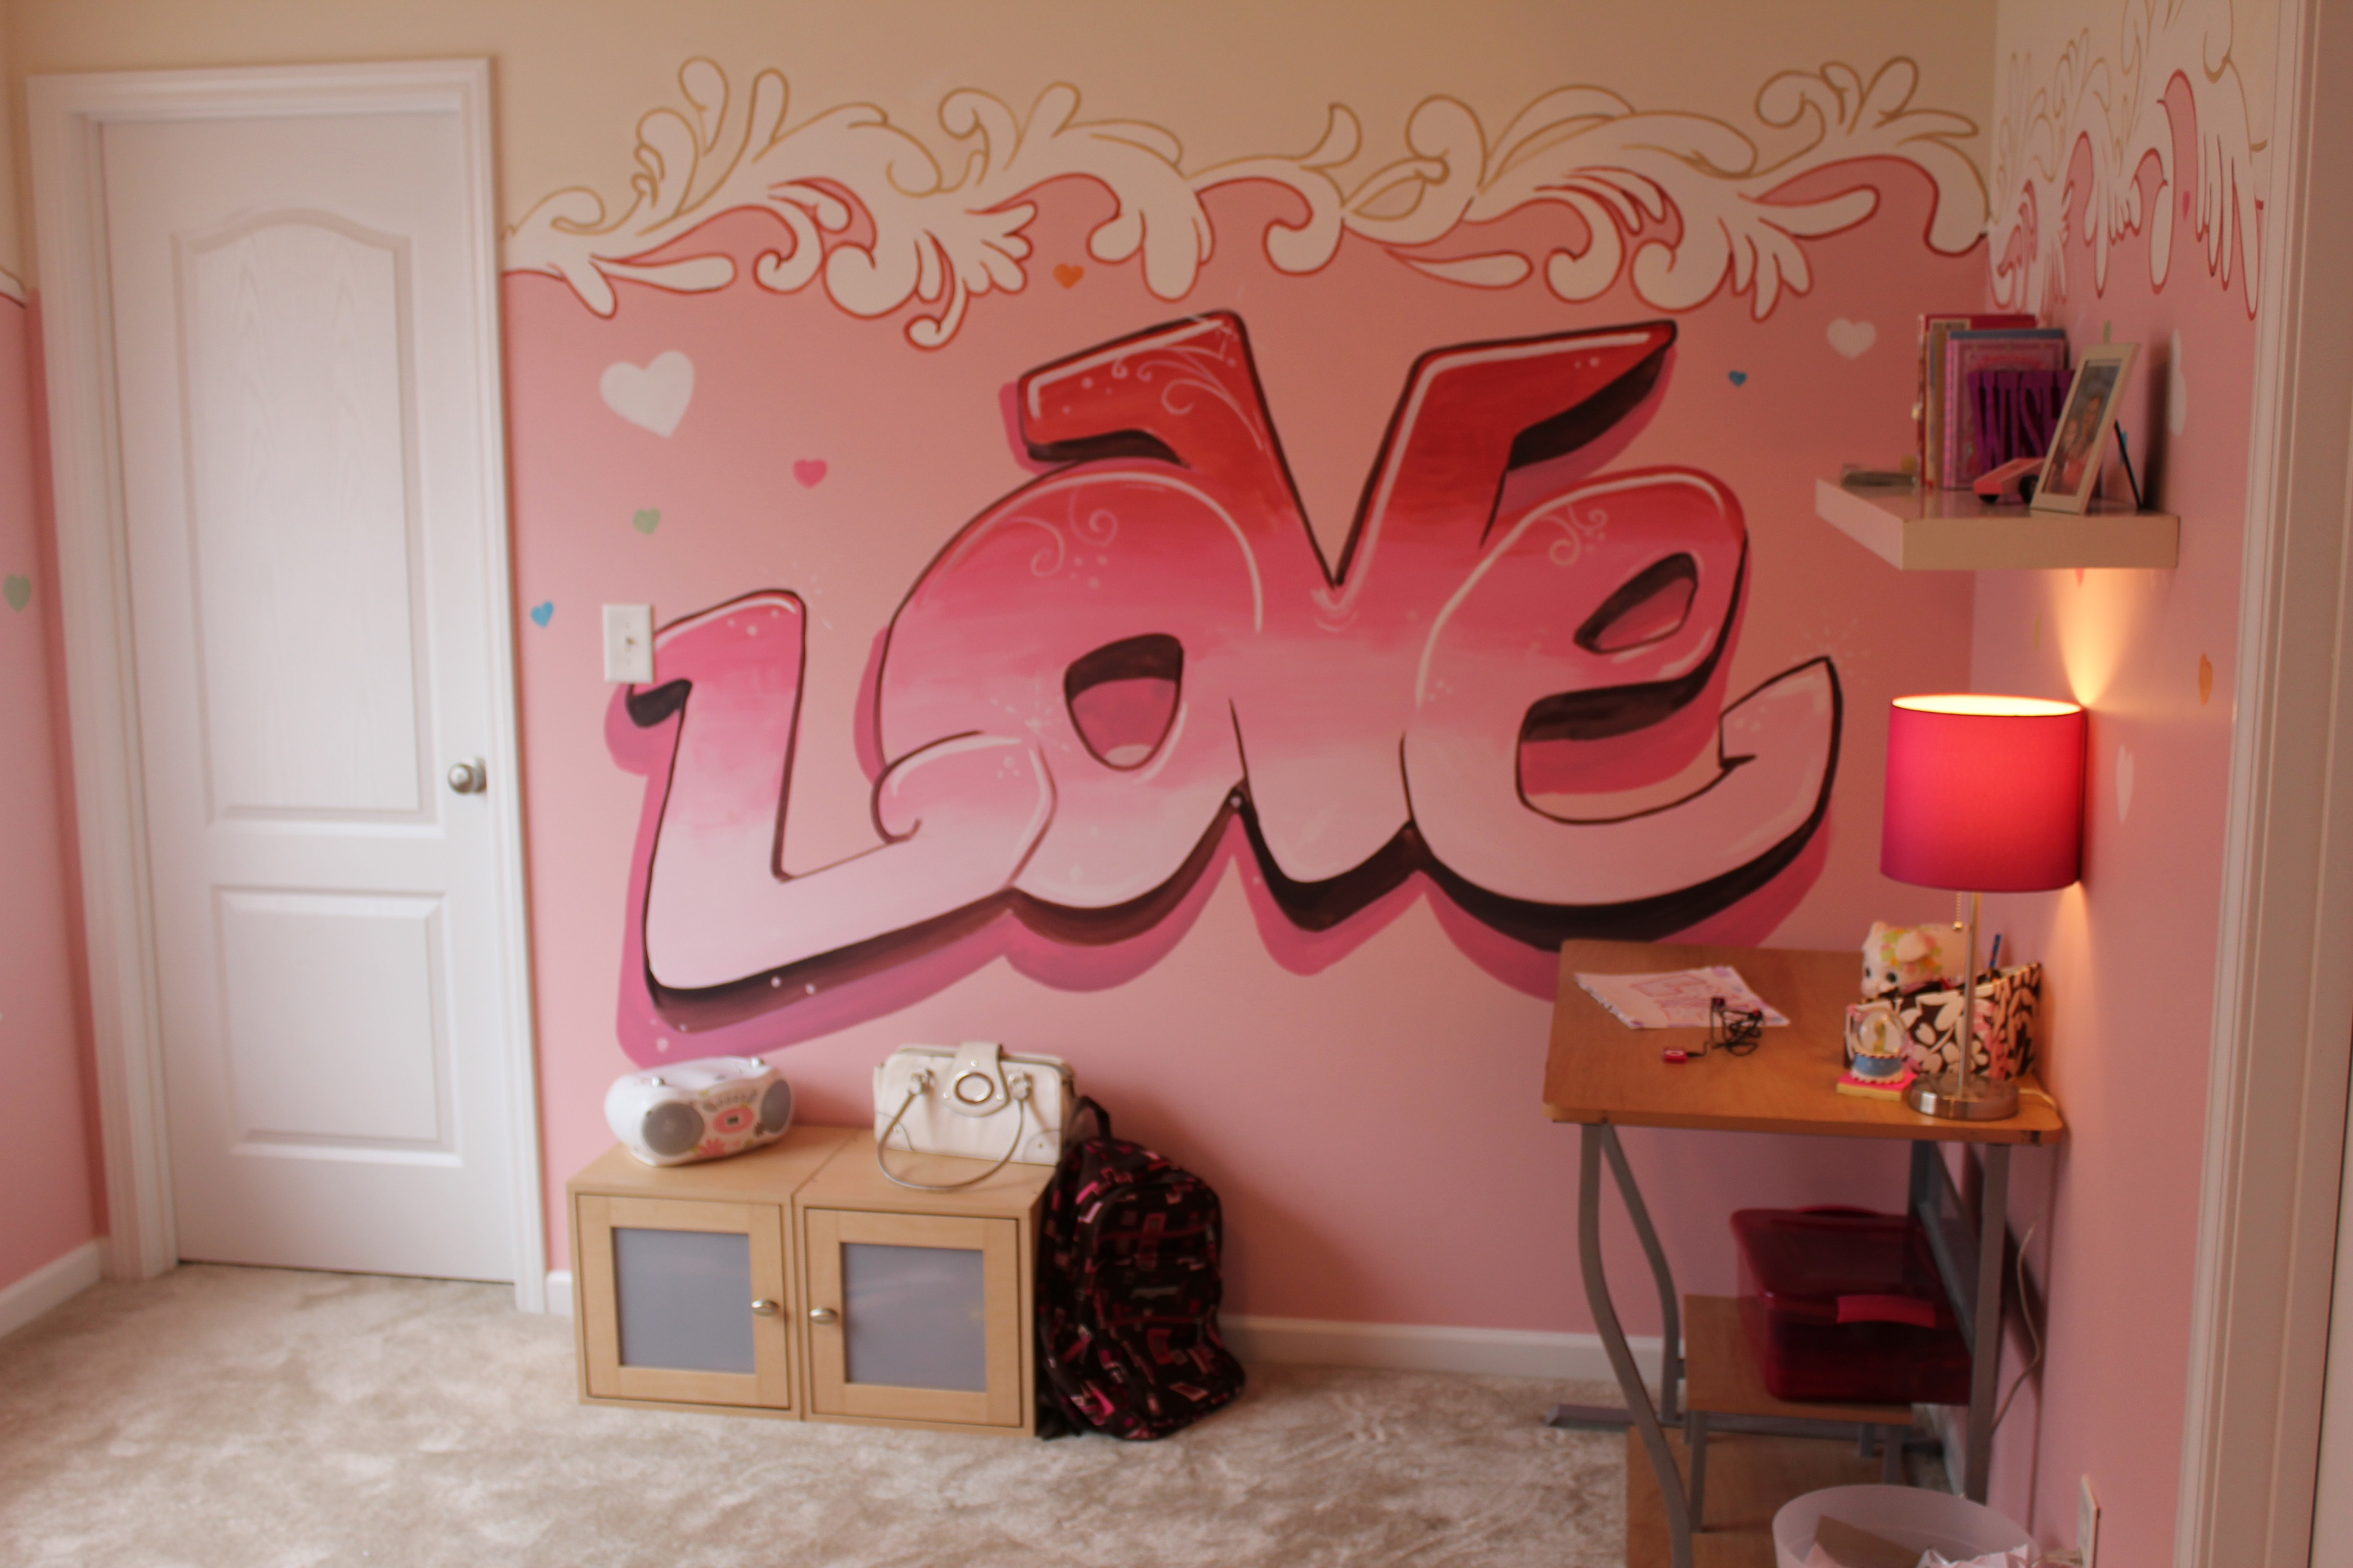 Love Quote with Pink Color Bedroom Wall Painting Ideas | Viahouse.Com